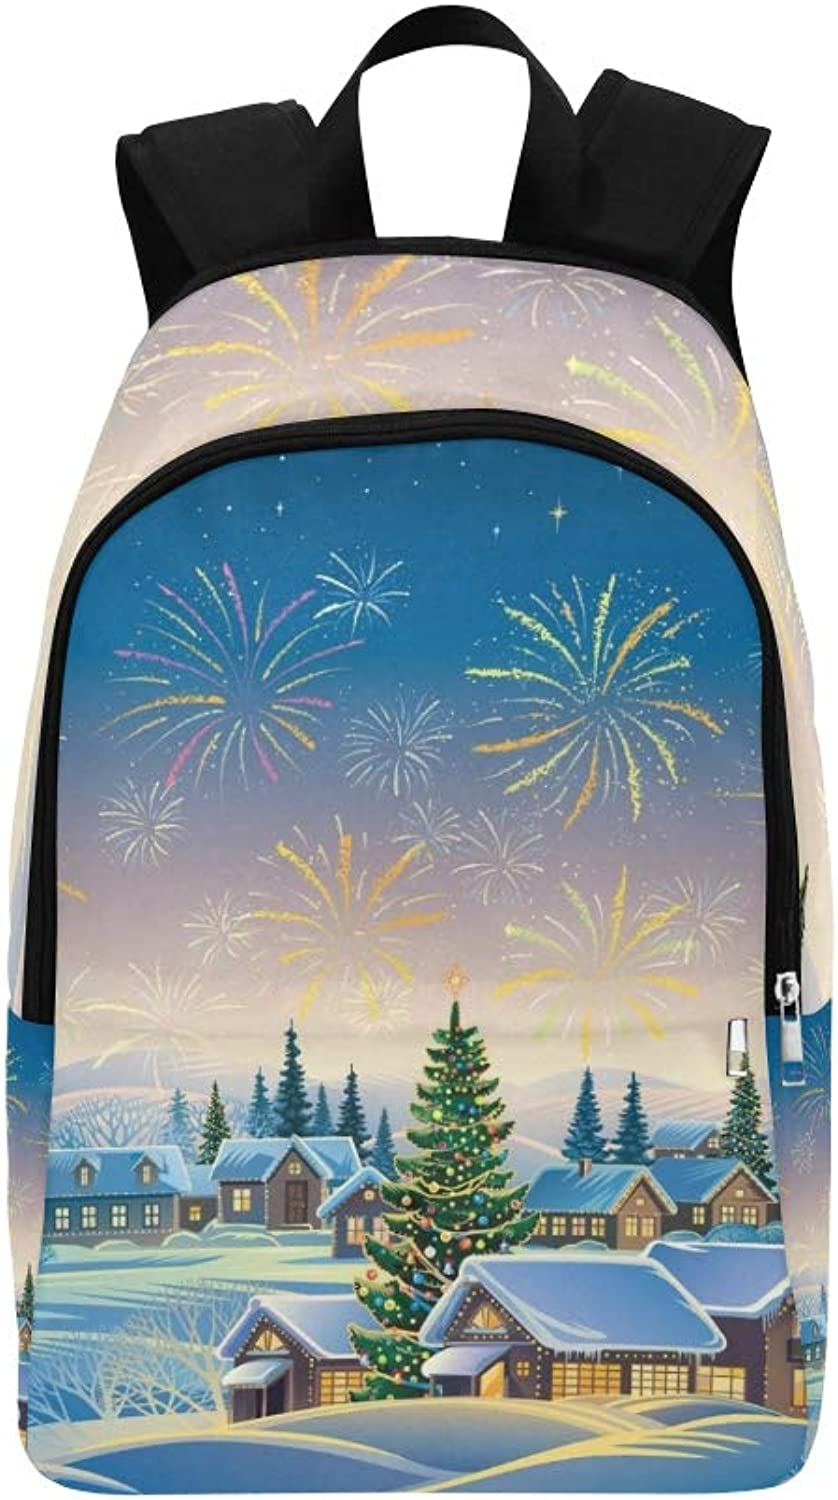 Festive Rural Landscape Winter Village Christmas Casual Daypack Travel Bag College School Backpack for Mens and Women